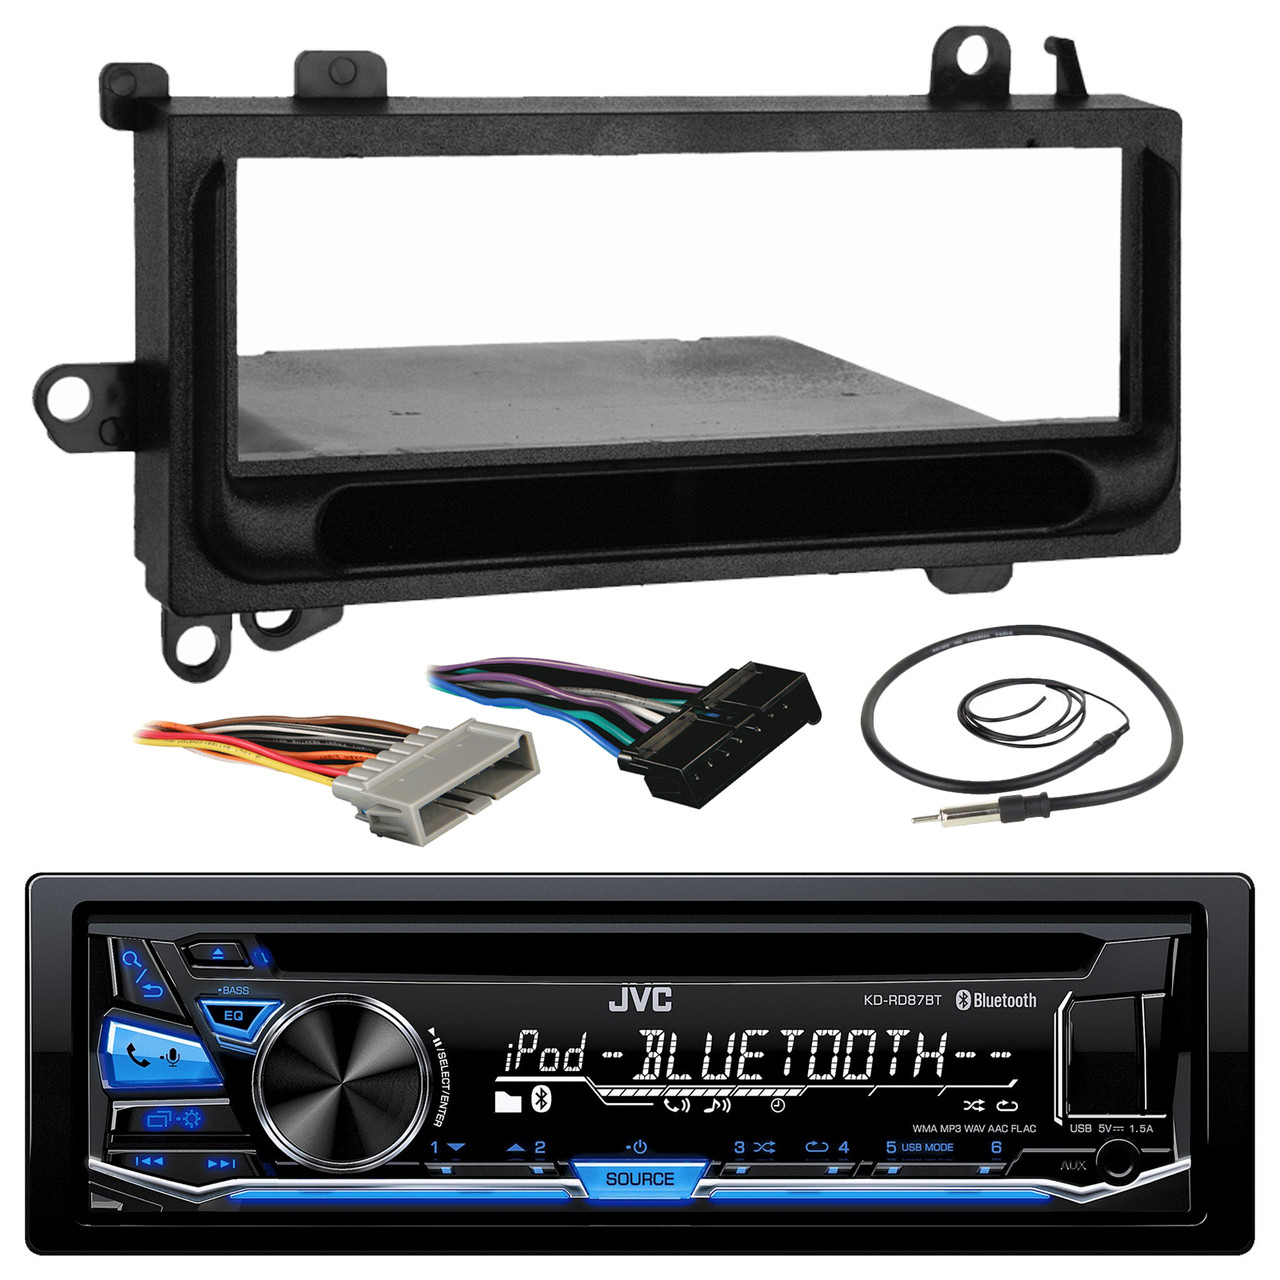 JVC KD-RD87BT Bluetooth iPod Android USB/MP3/WMA CD Player Stereo Receiver, on usb wiring, ipod phone, ipod audio cable,